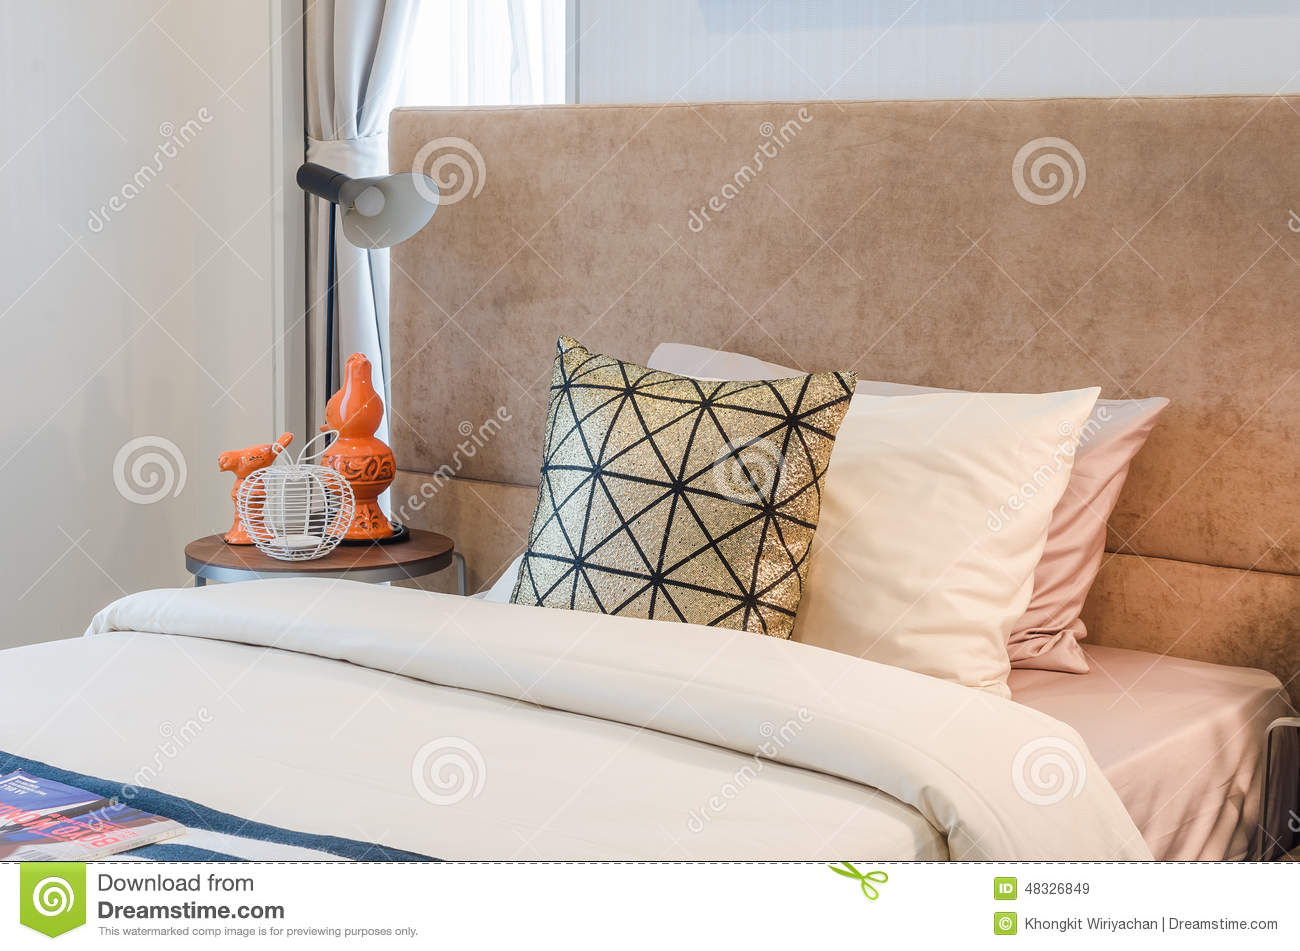 Single Bed With Pillows In Bedroom Stock Image - Image: 48326849